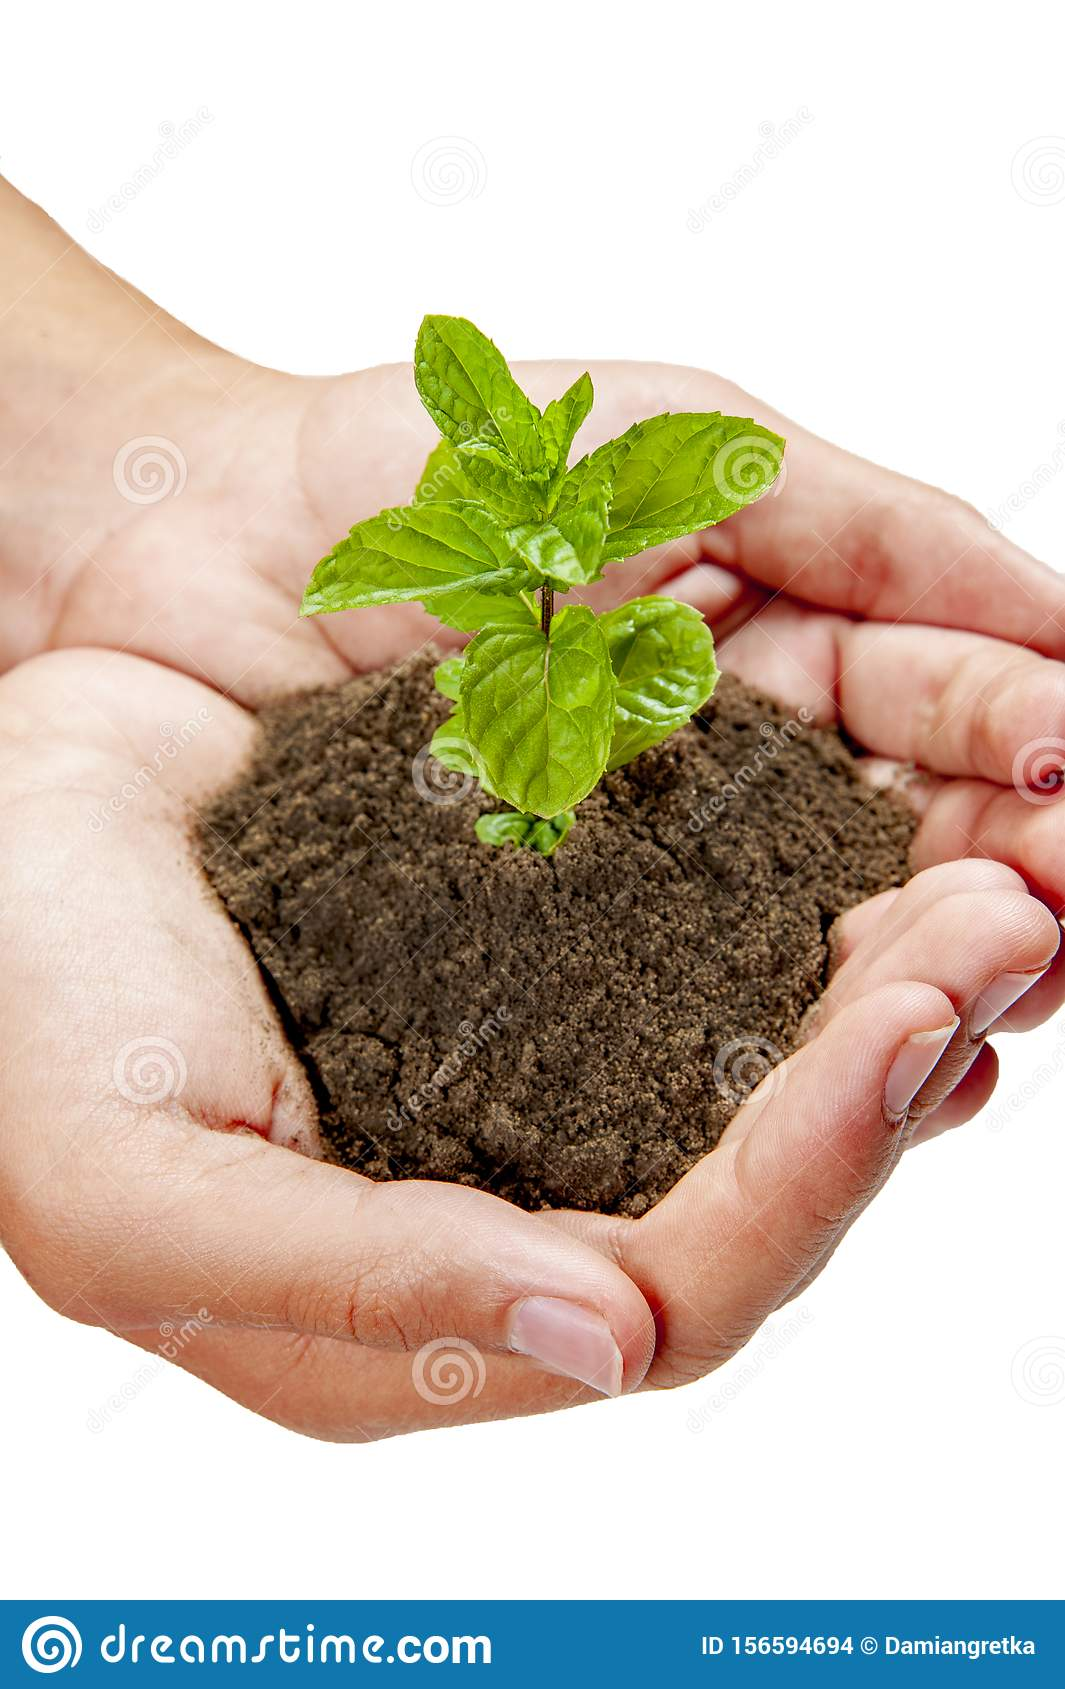 Growing plants on hand and save the earth